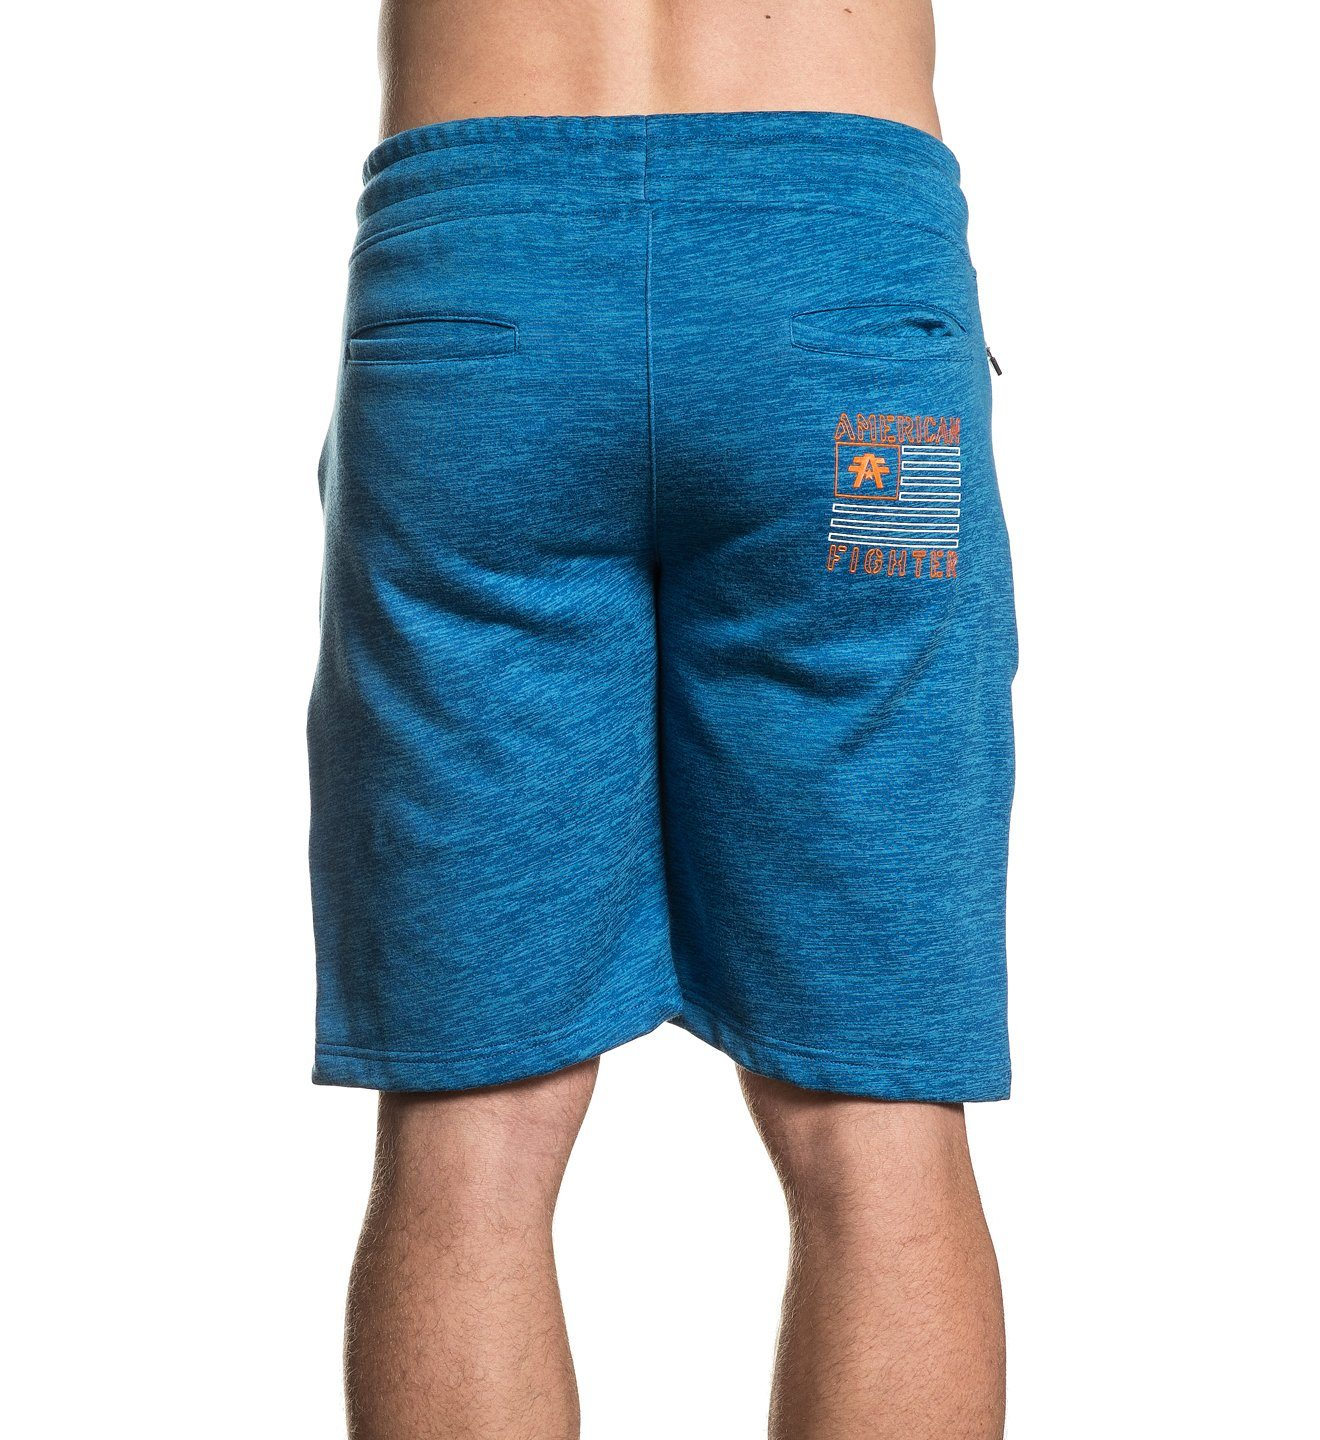 Carter Short - Mens Shorts And Boardshorts - American Fighter